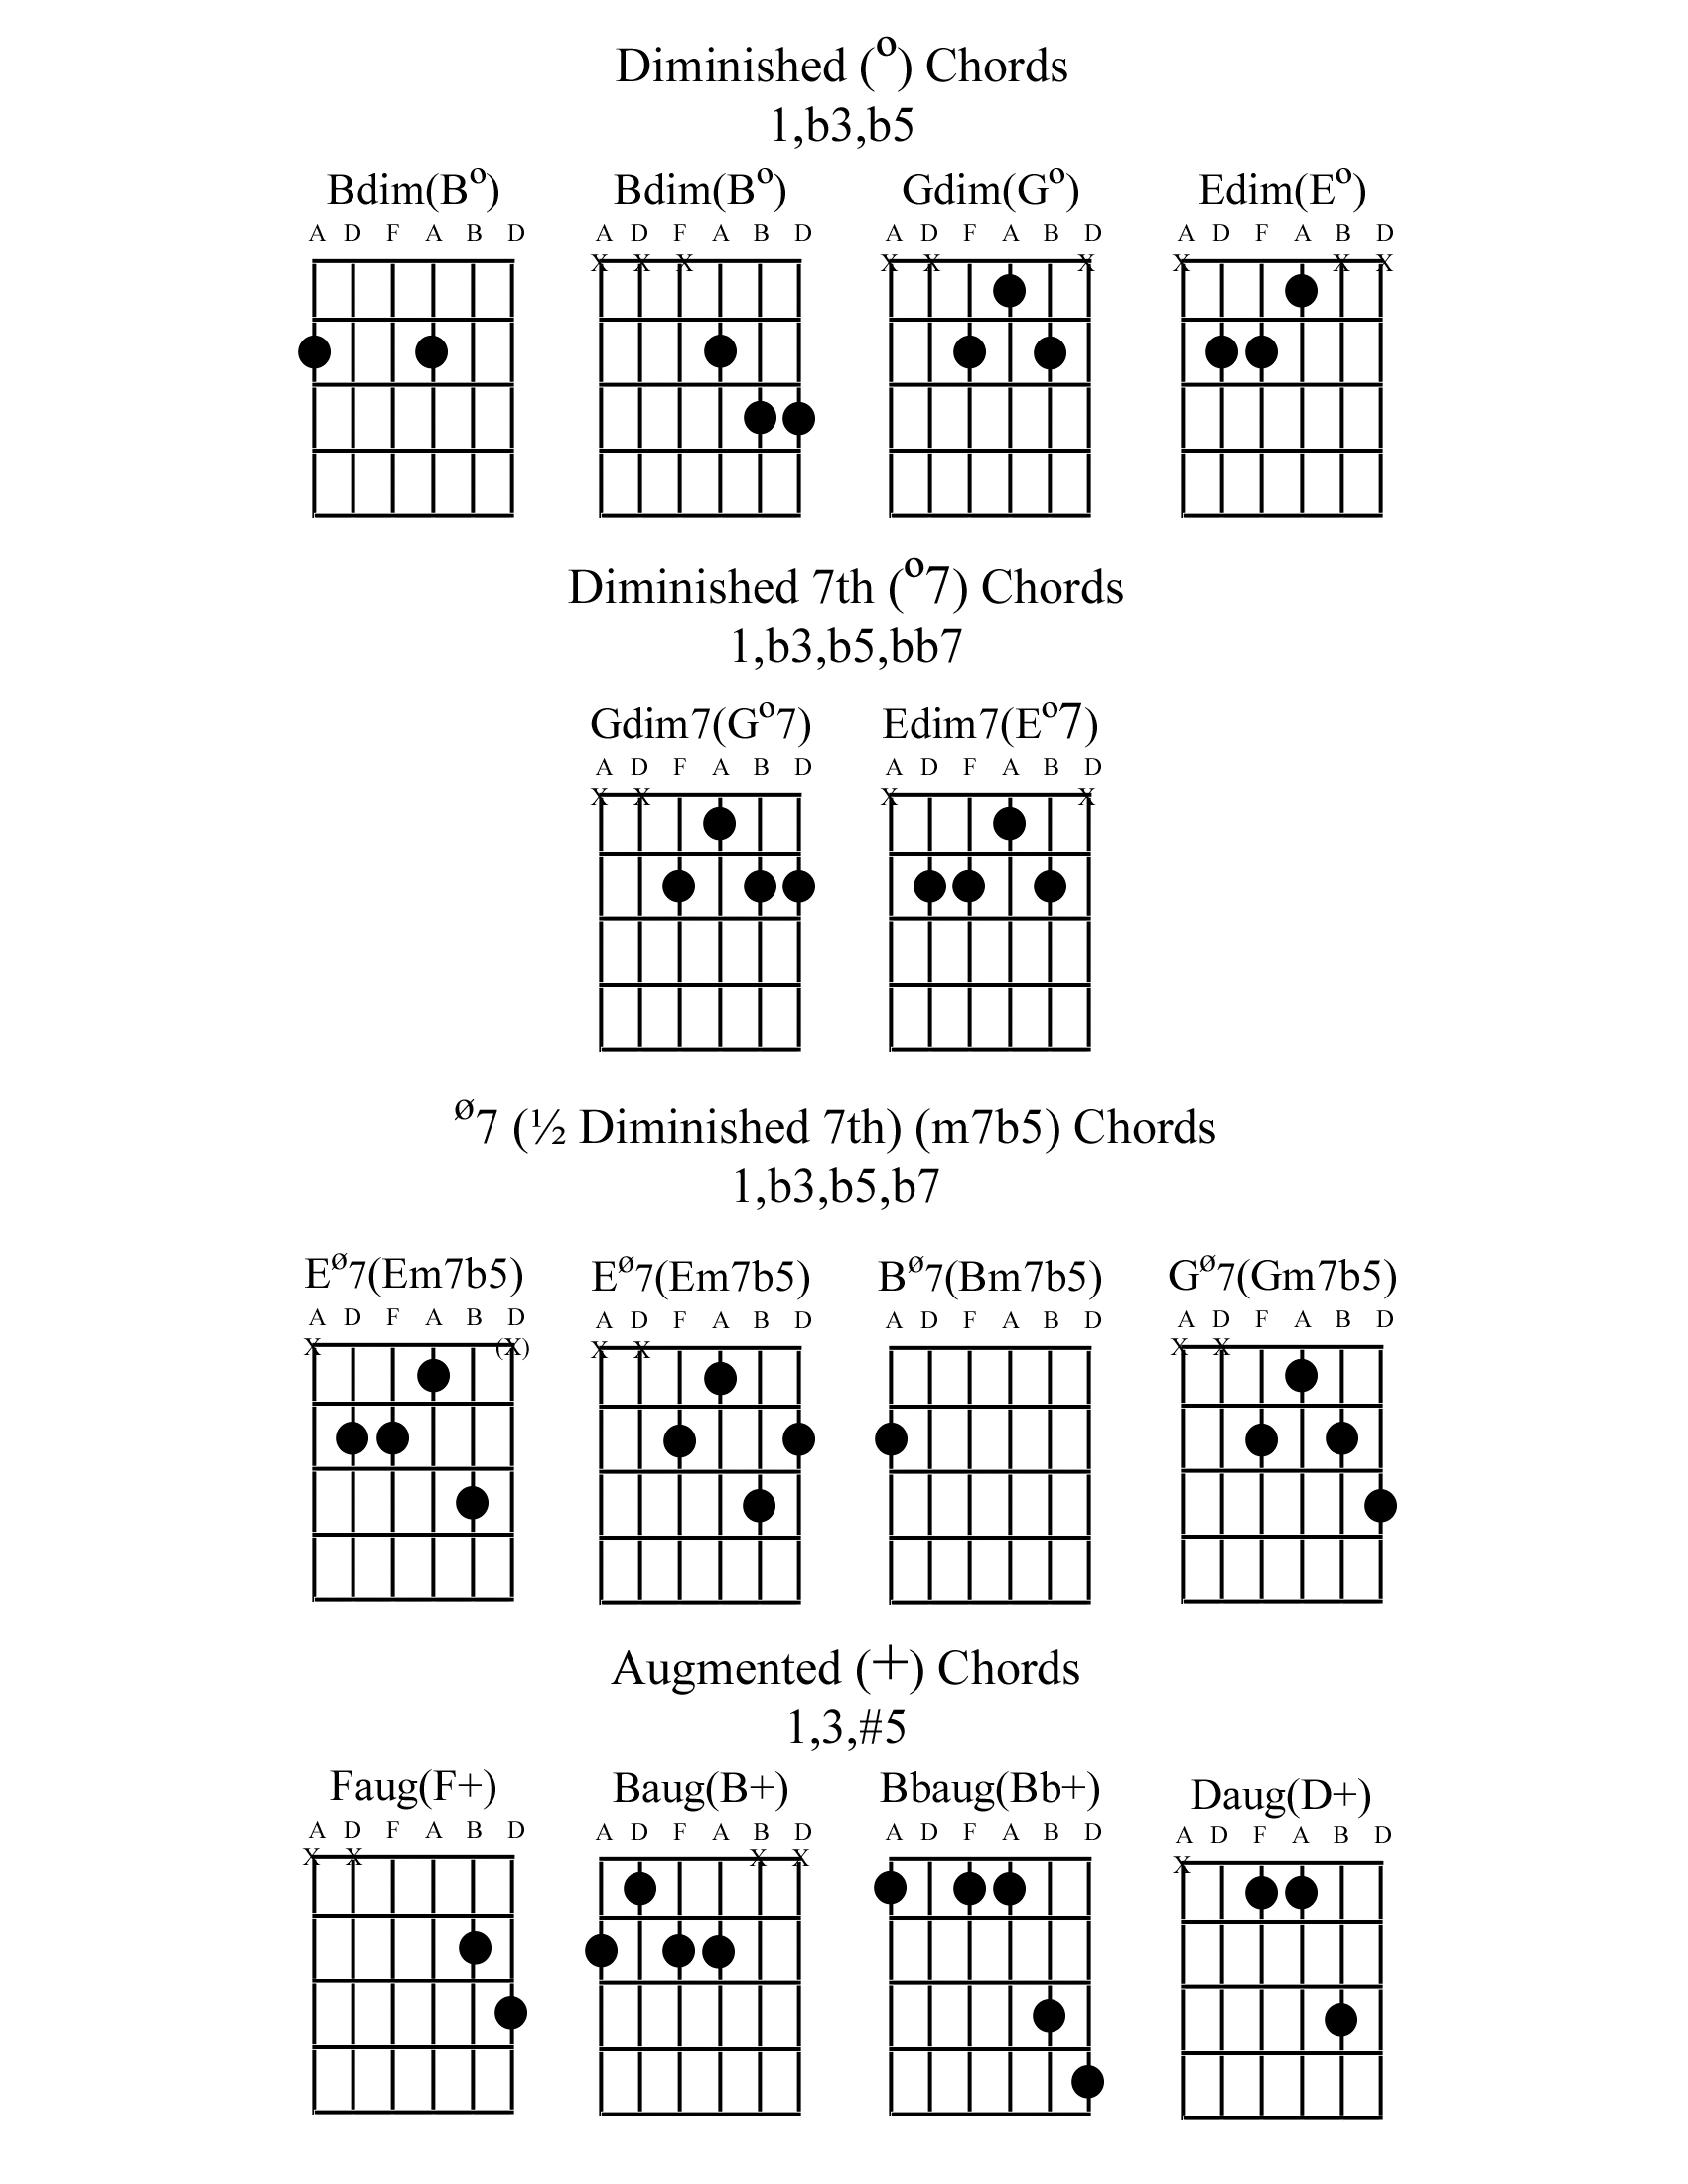 Dminor6thchord charts 9 diminished chords diminished 7th chords 12 diminished 7th chords augmented chords hexwebz Gallery